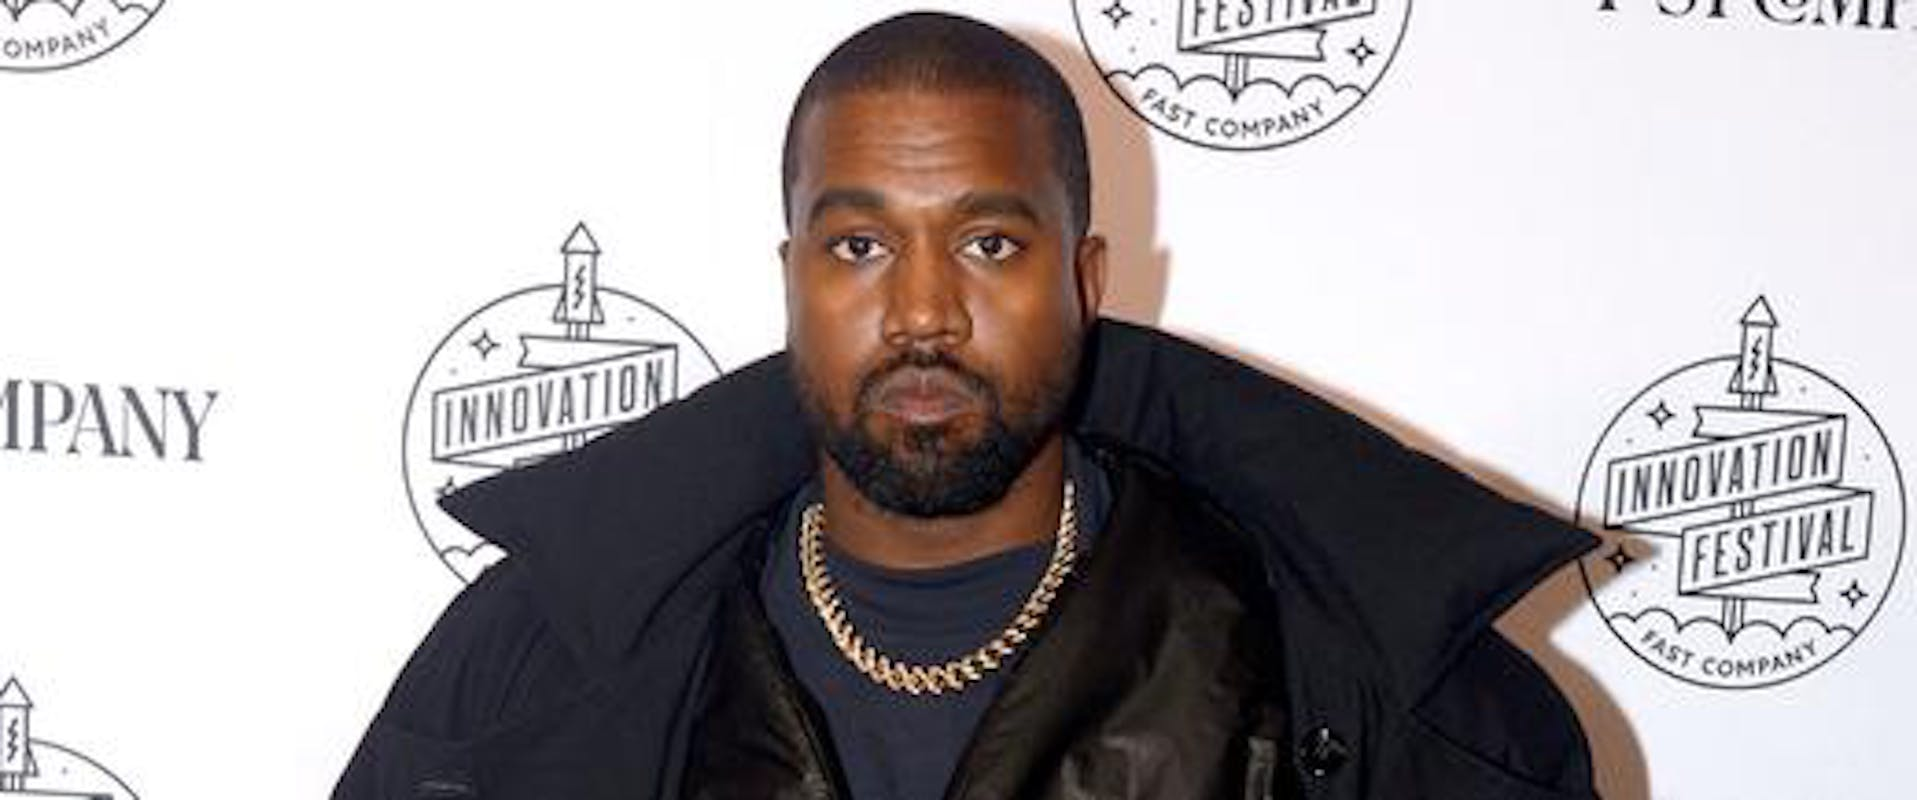 Kanye West attends the Fast Company Innovation Festival in New York City.